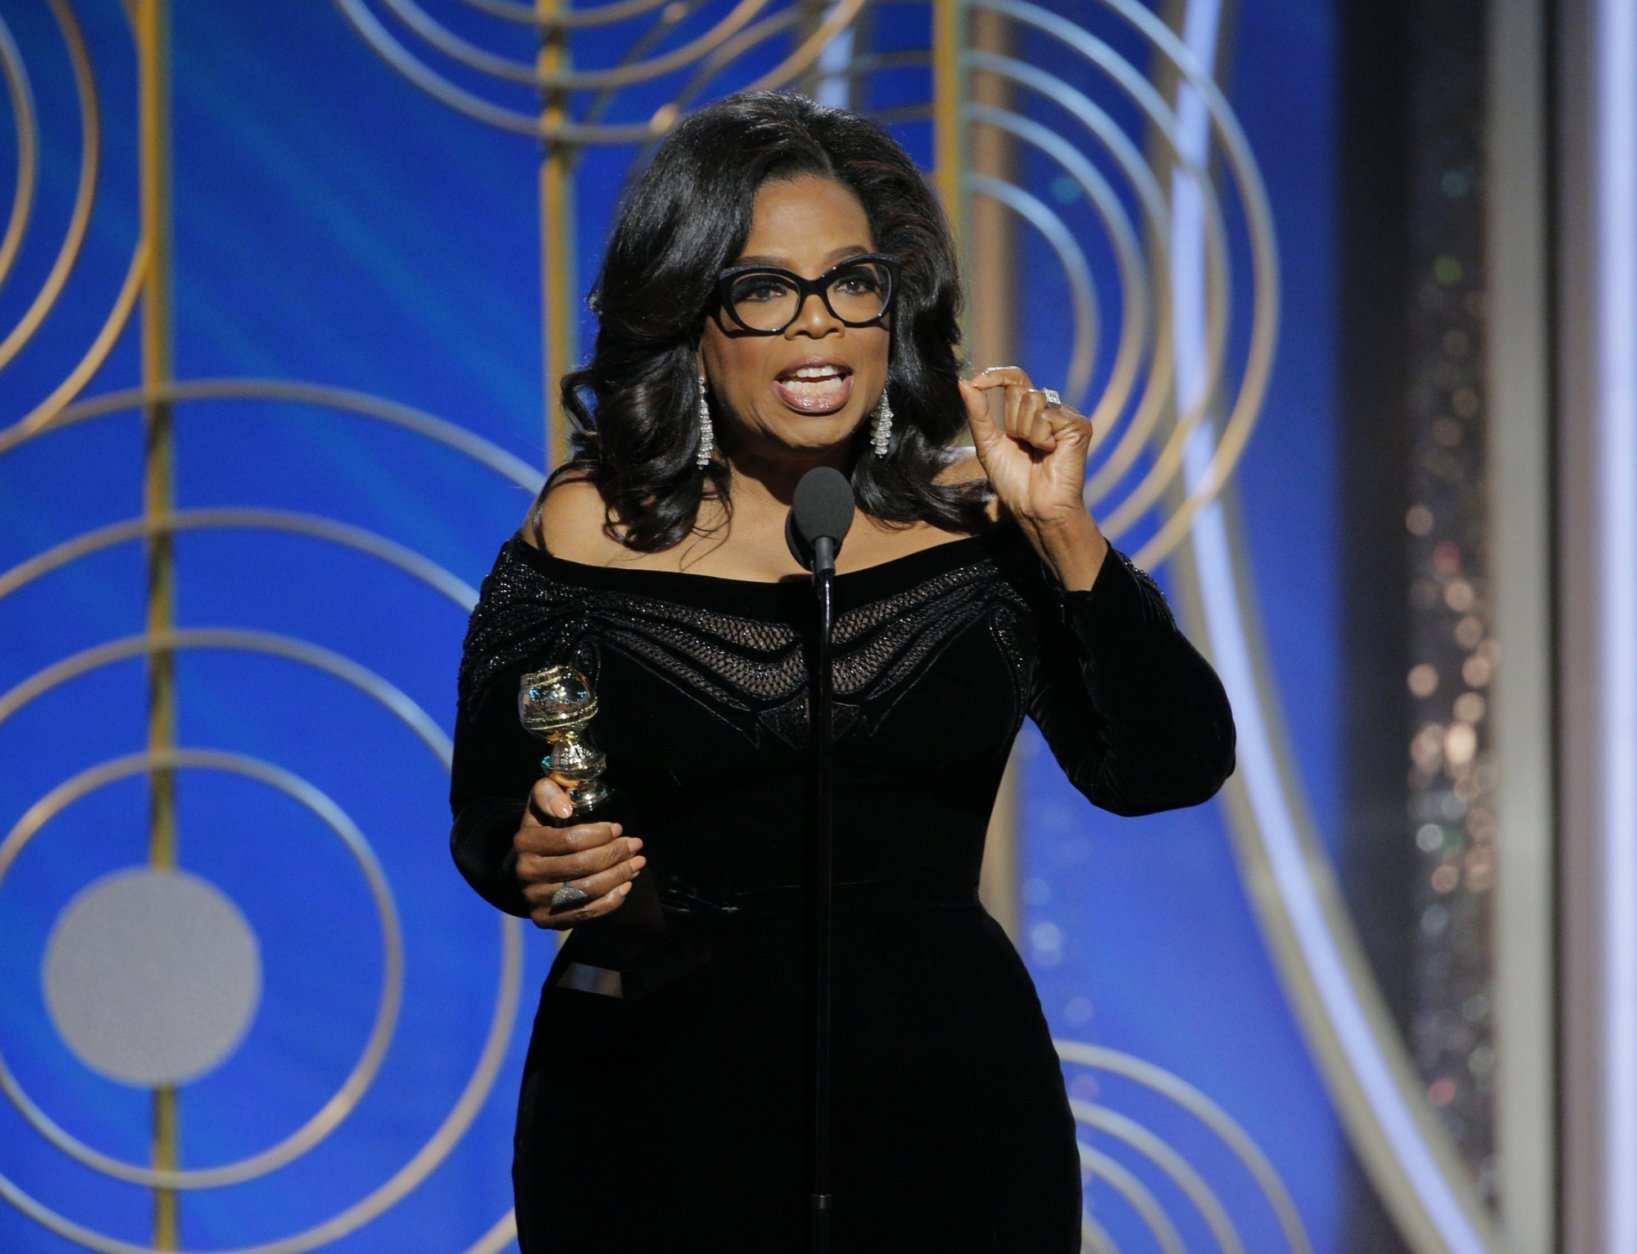 This Jan. 7, 2018 image released by NBC shows Oprah Winfrey accepting the Cecil B. DeMille Award at the 75th Annual Golden Globe Awards in Beverly Hills, Calif. Winfrey's rousing call for social justice in the name of the MeToo movement drew wild cheers in the ballroom at the Golden Globes Awards in January and reverberated across the land.  (Paul Drinkwater/NBC via AP)